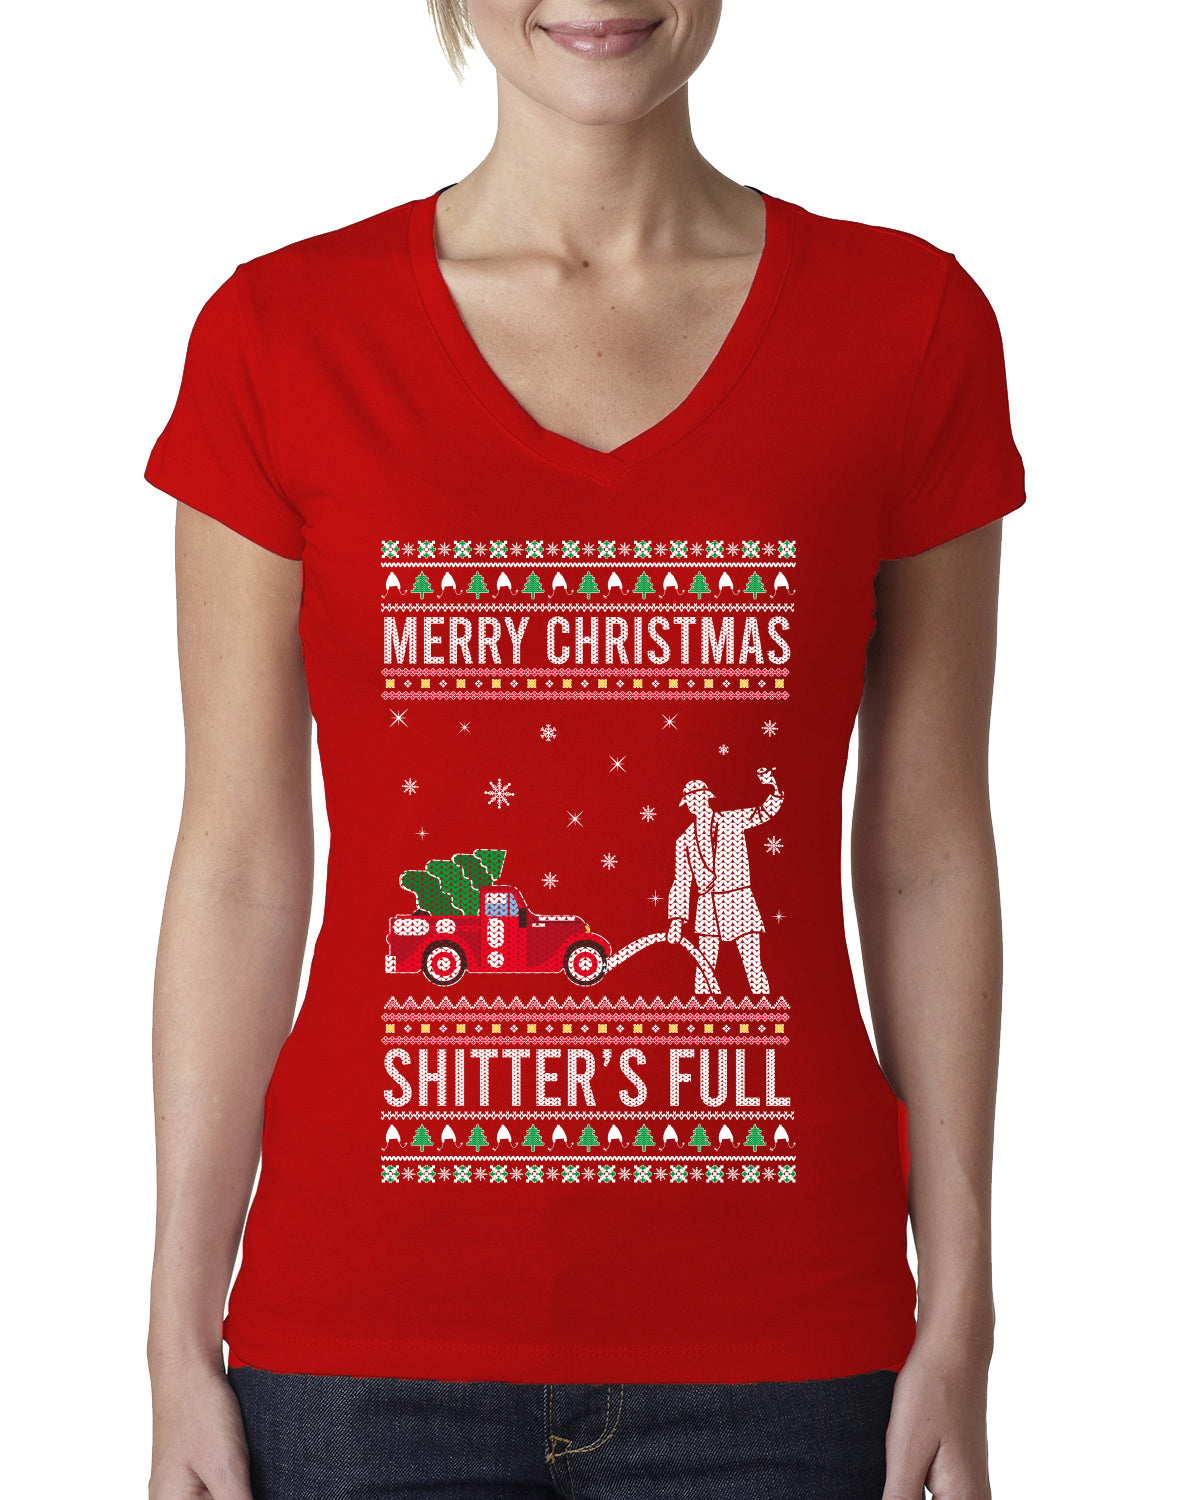 Merry Christmas Shitter's Full Christmas Vacation Ugly Christmas Sweater Womens Junior Fit V-Neck Tee